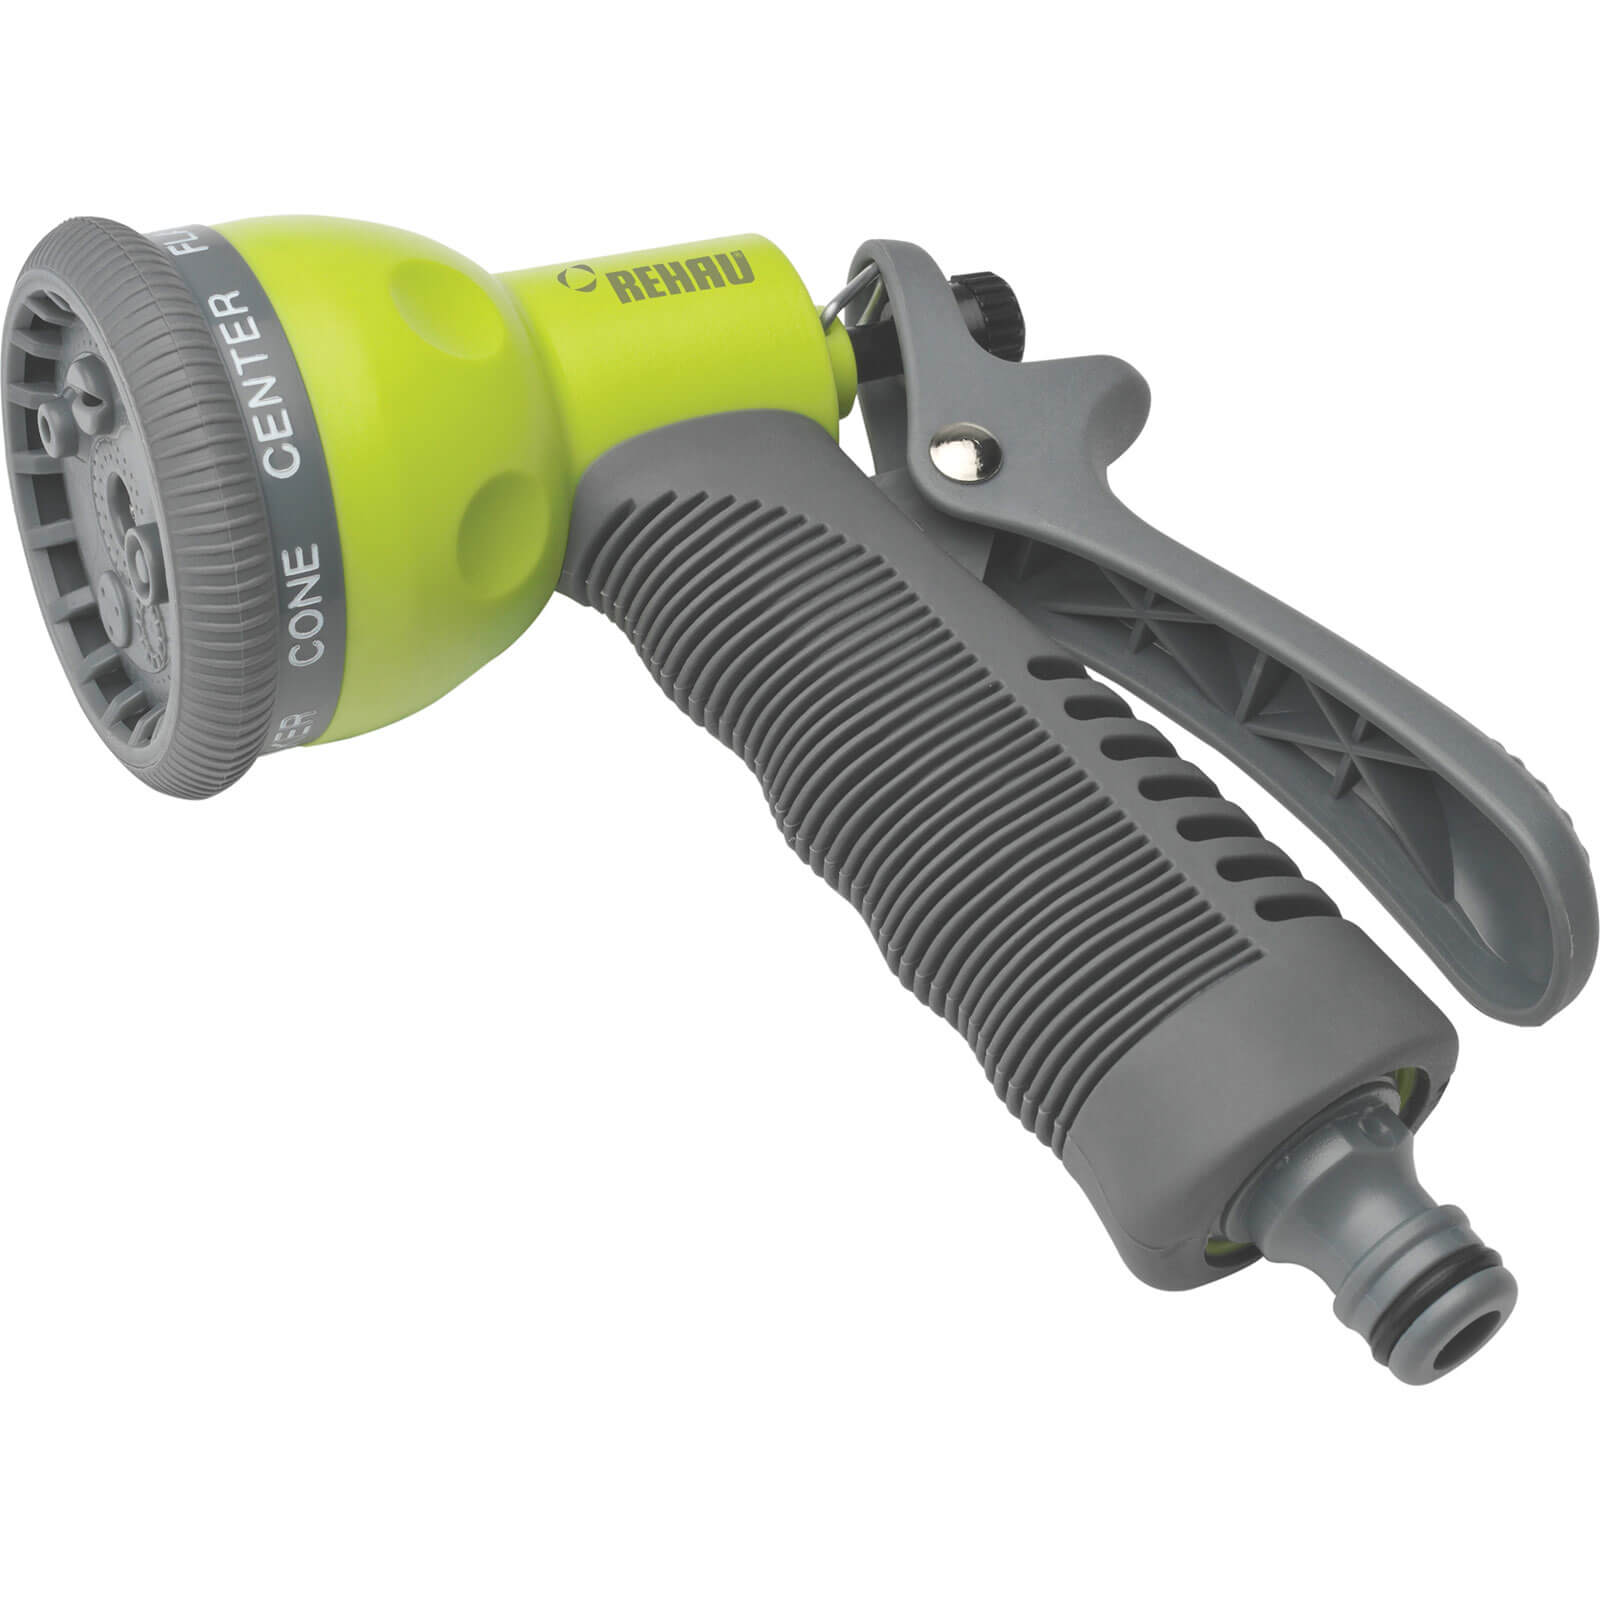 Rehau 7 Pattern Spray Gun